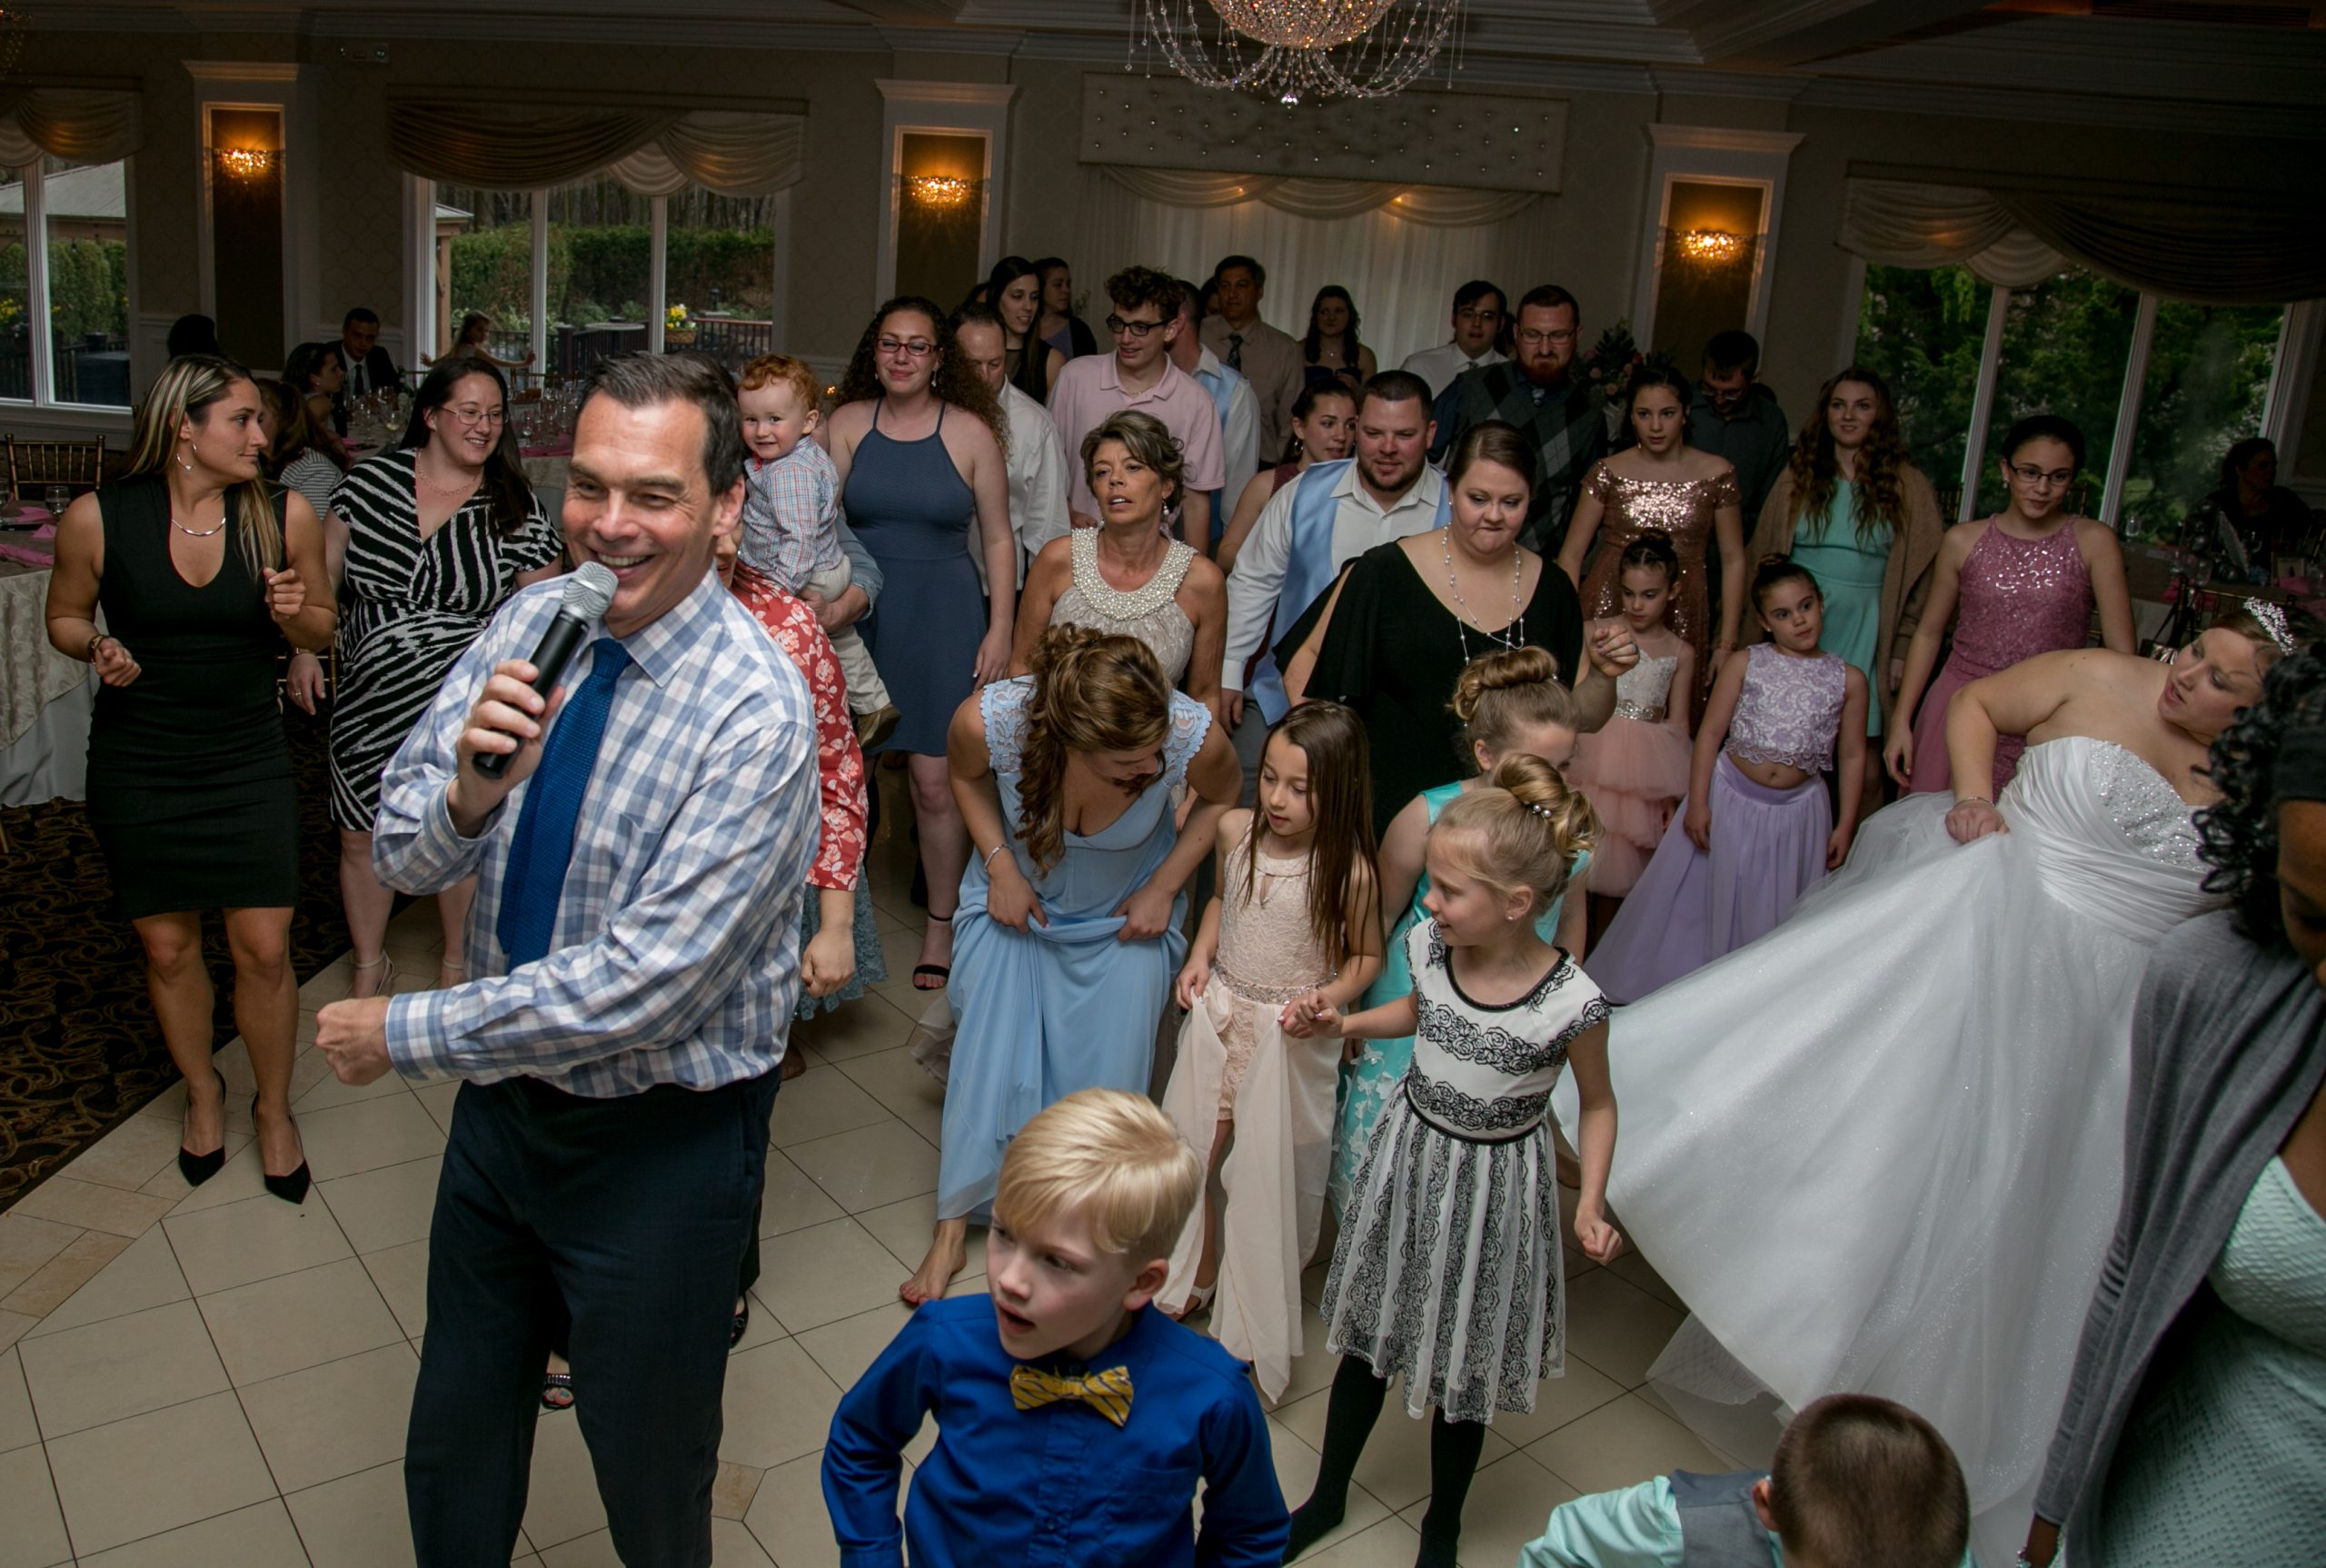 Elite Entertainment_ NJWedding_ EliteDigitalImages_EnglishManor_Cassidy and Dennis8 Mike Walter2